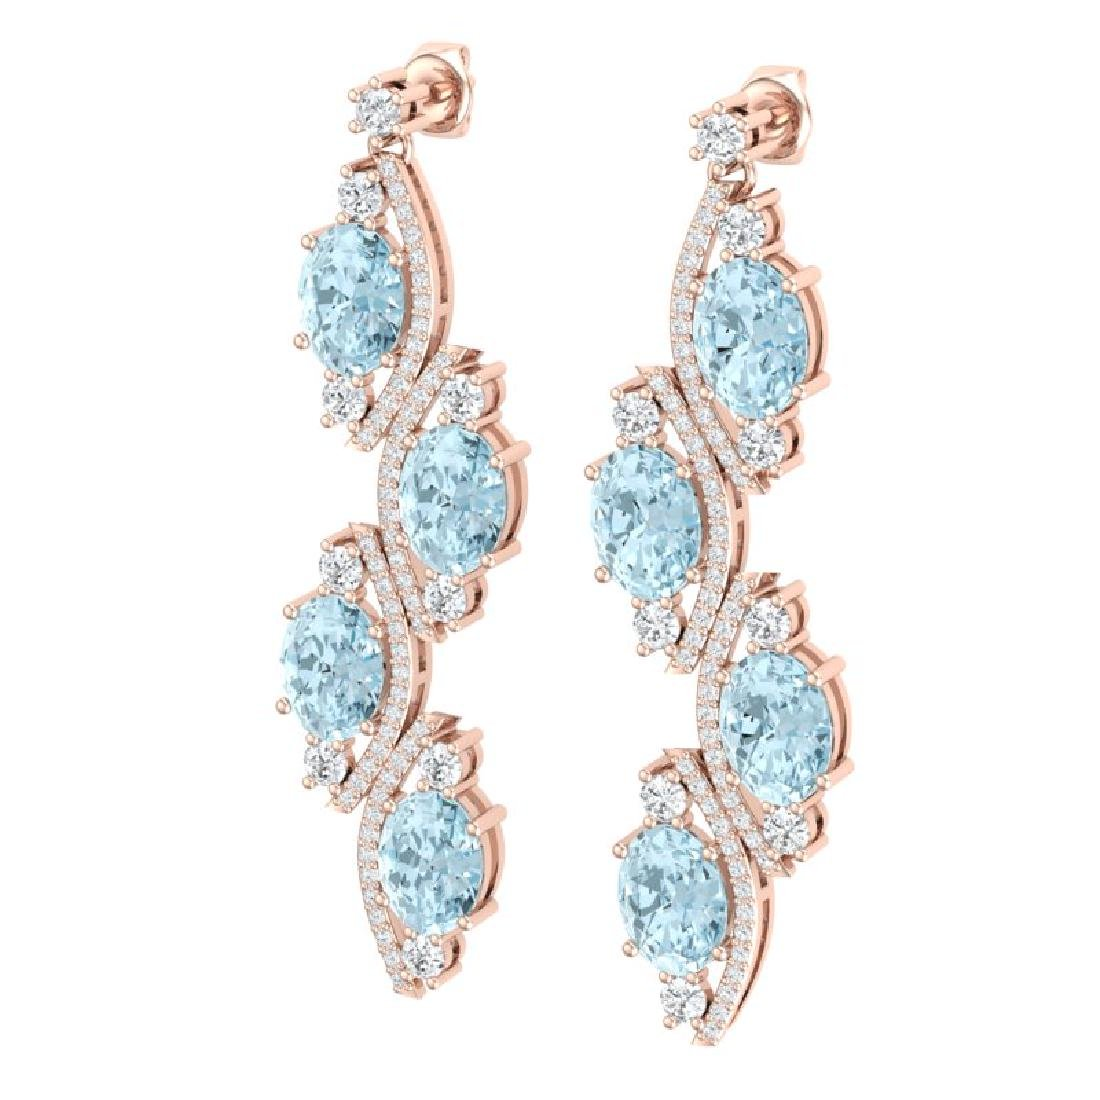 15.72 CTW Royalty Sky Topaz & VS Diamond Earrings 18K - 2